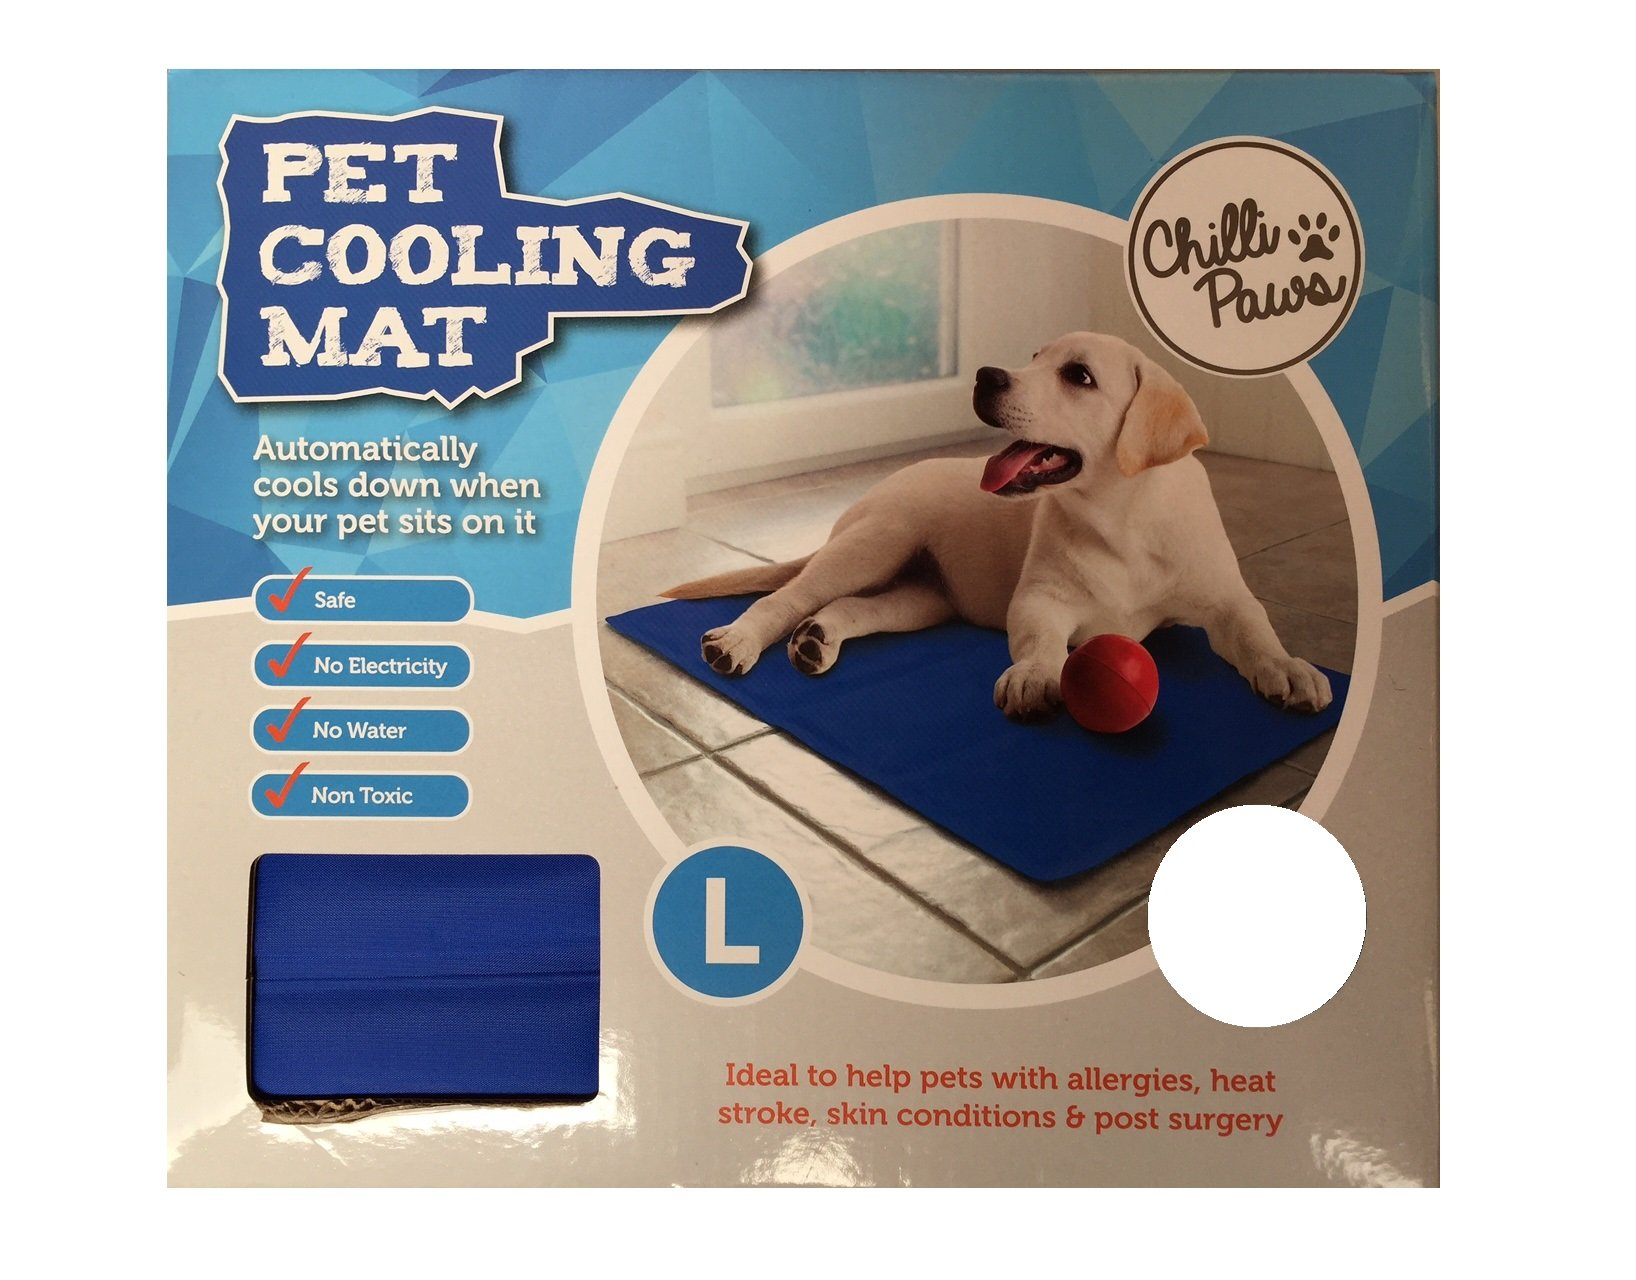 New The Pet Shop Cooling Mat For Dogs & Cats Dark Blue – Large 90 x 70cm